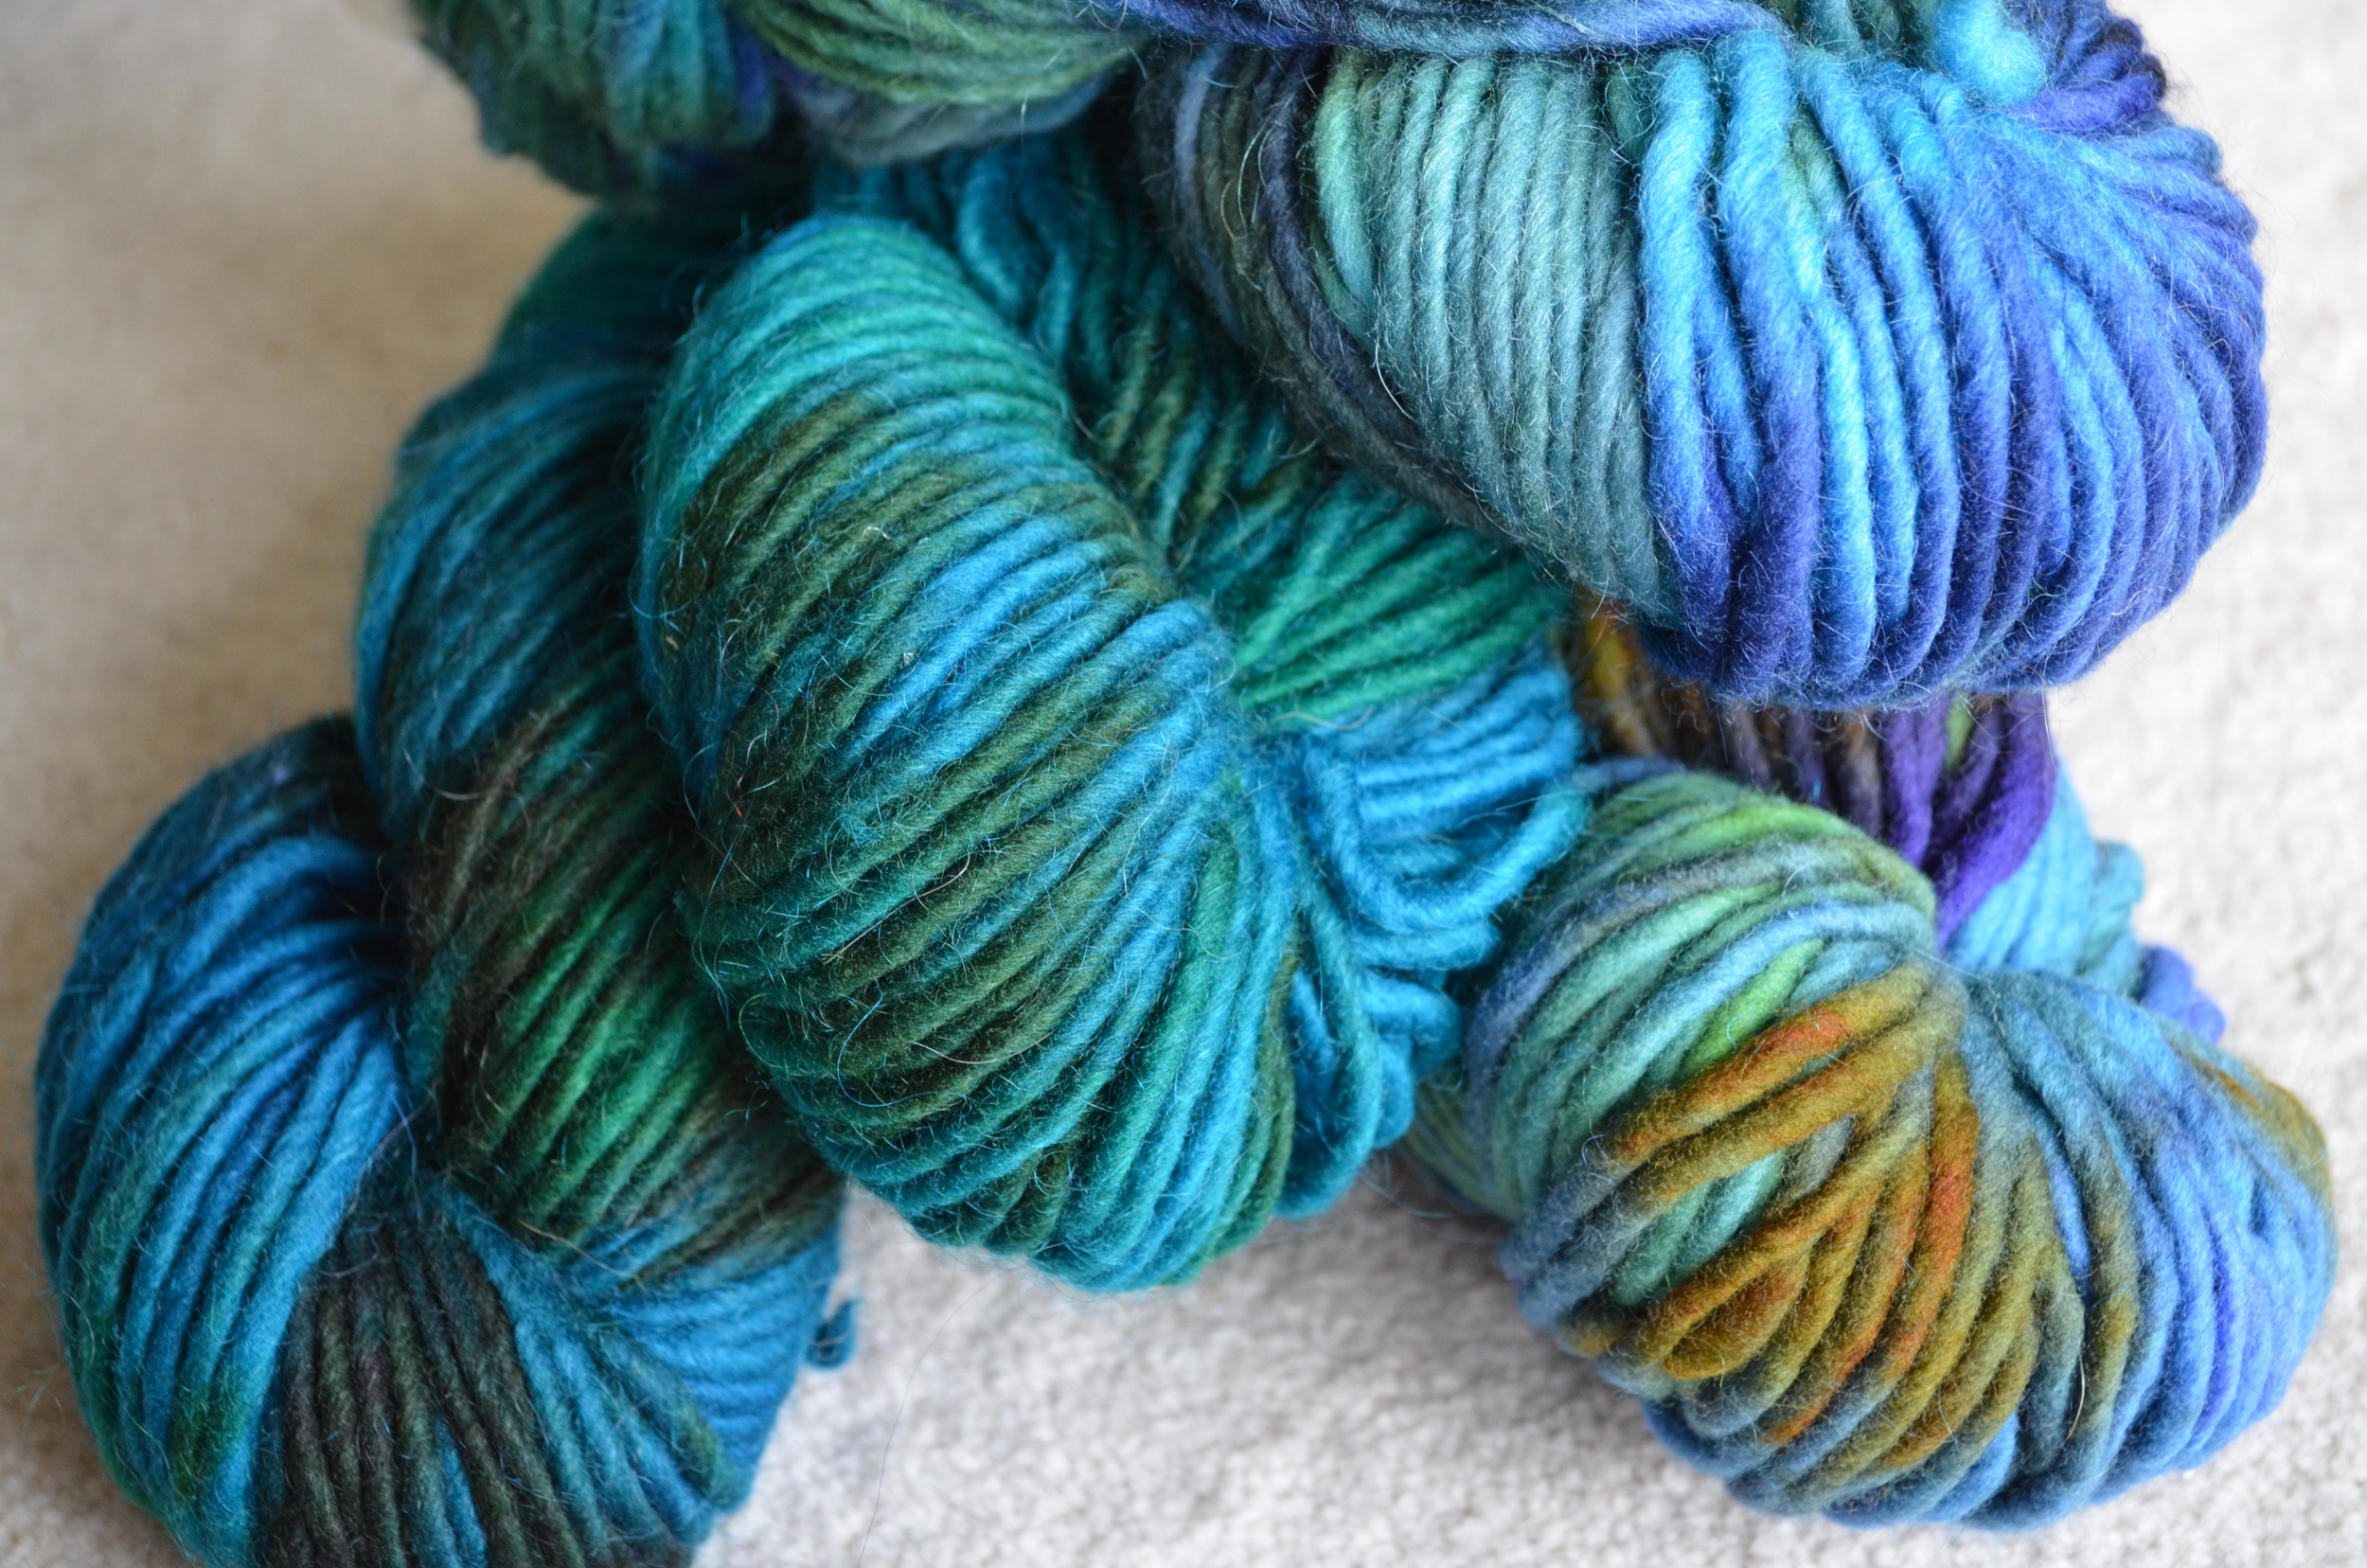 Yarn on warporweft.com